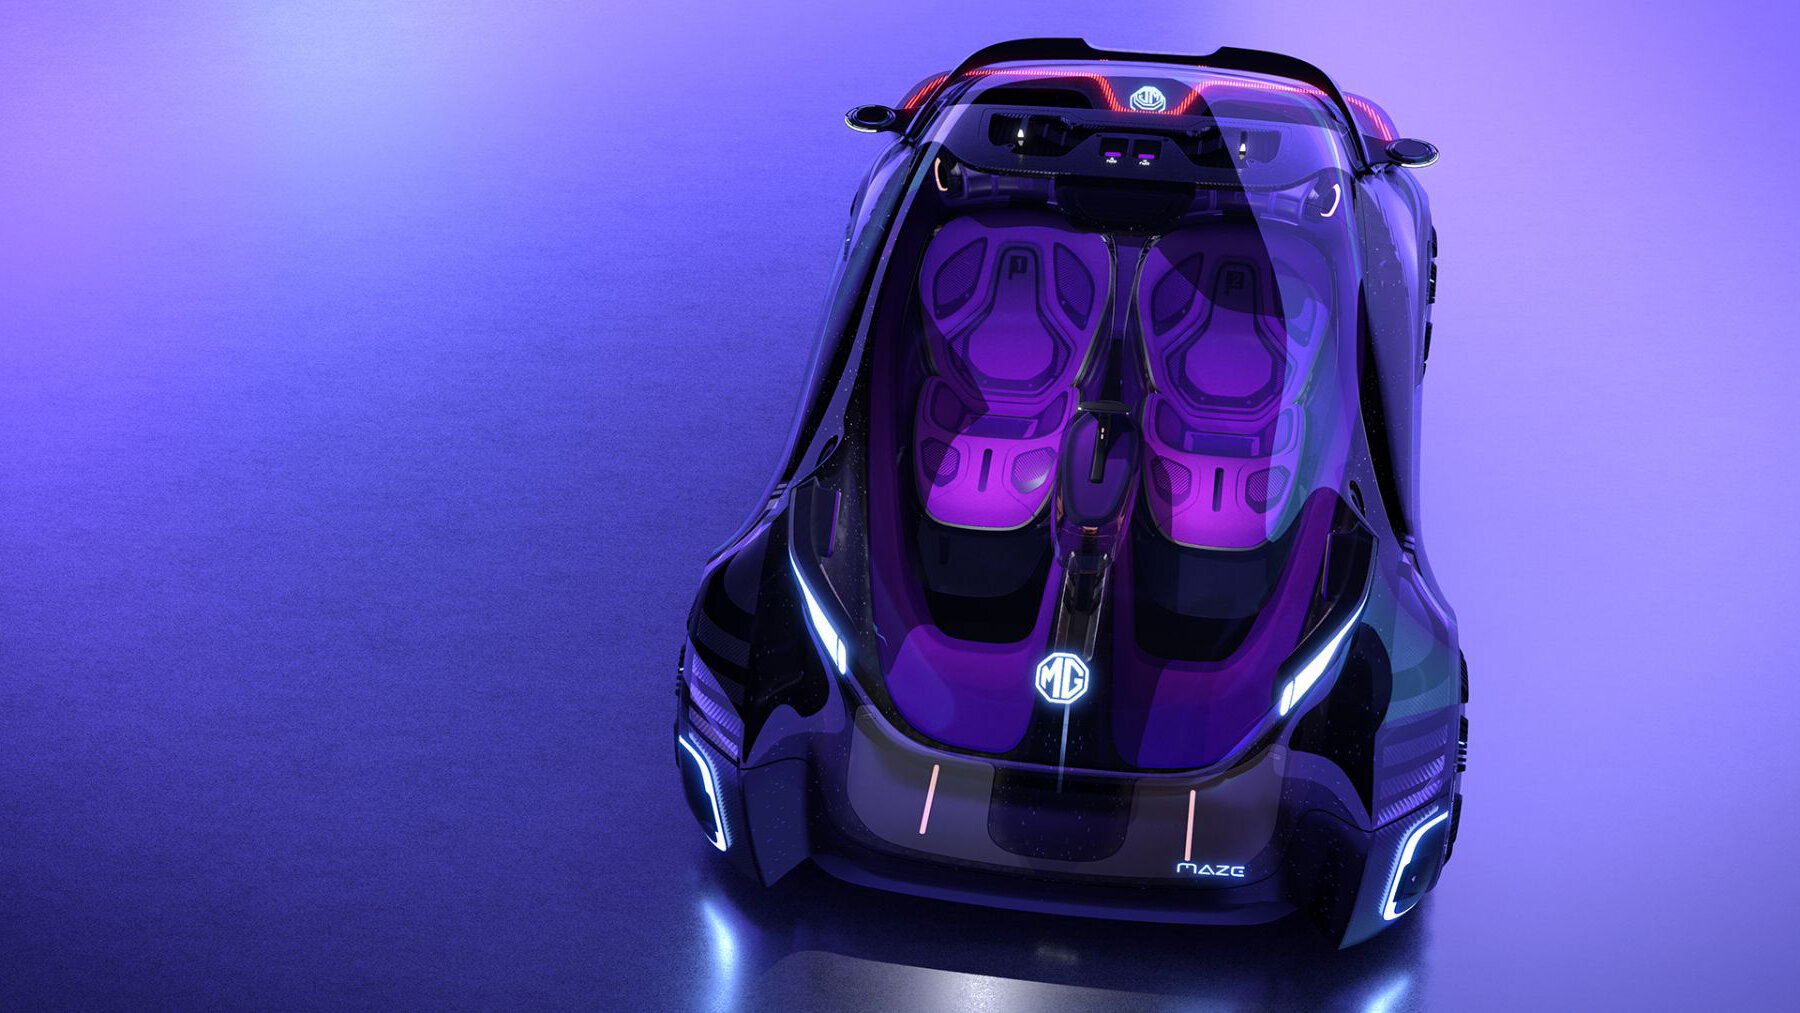 MG Motor Company, part of Chinese SAIC Group, has revealed the first images and specifications of its Maze Concept, a futuristic design study inspired by video games.